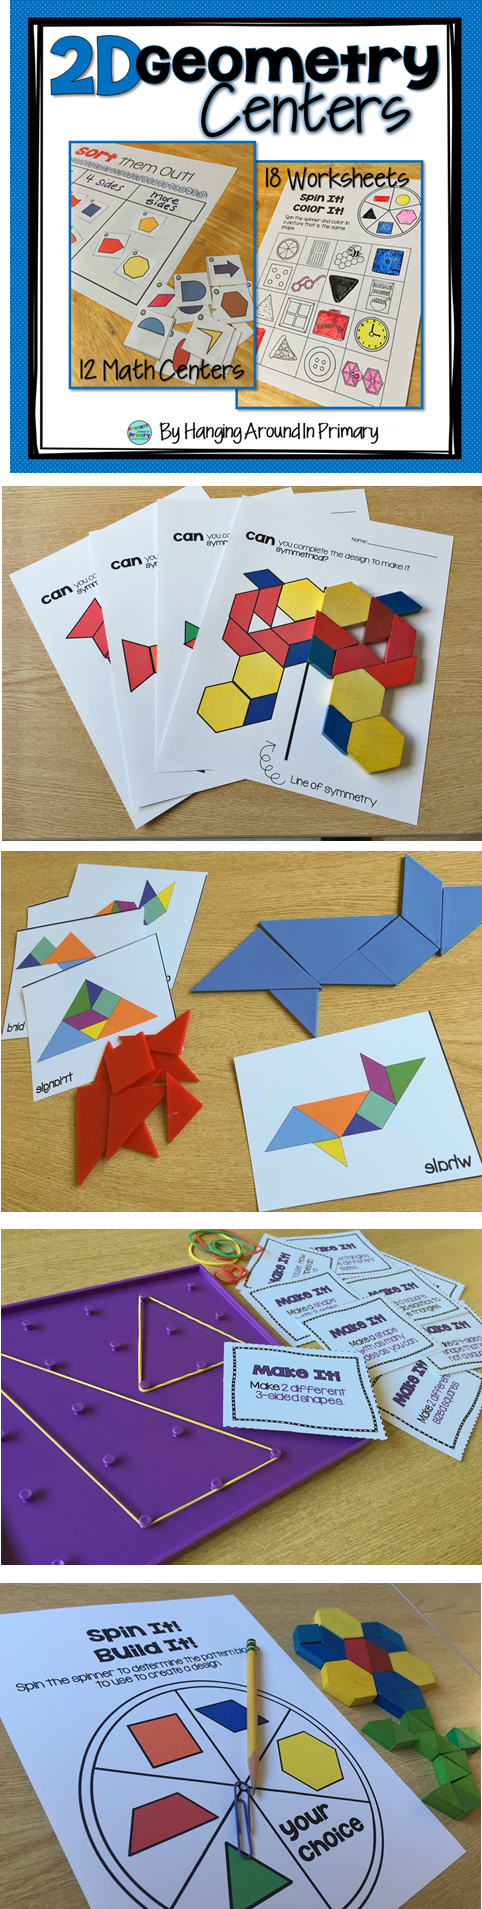 Use manipulatives you already have in your classroom to create a hands-on experience to teach 2D geometry.